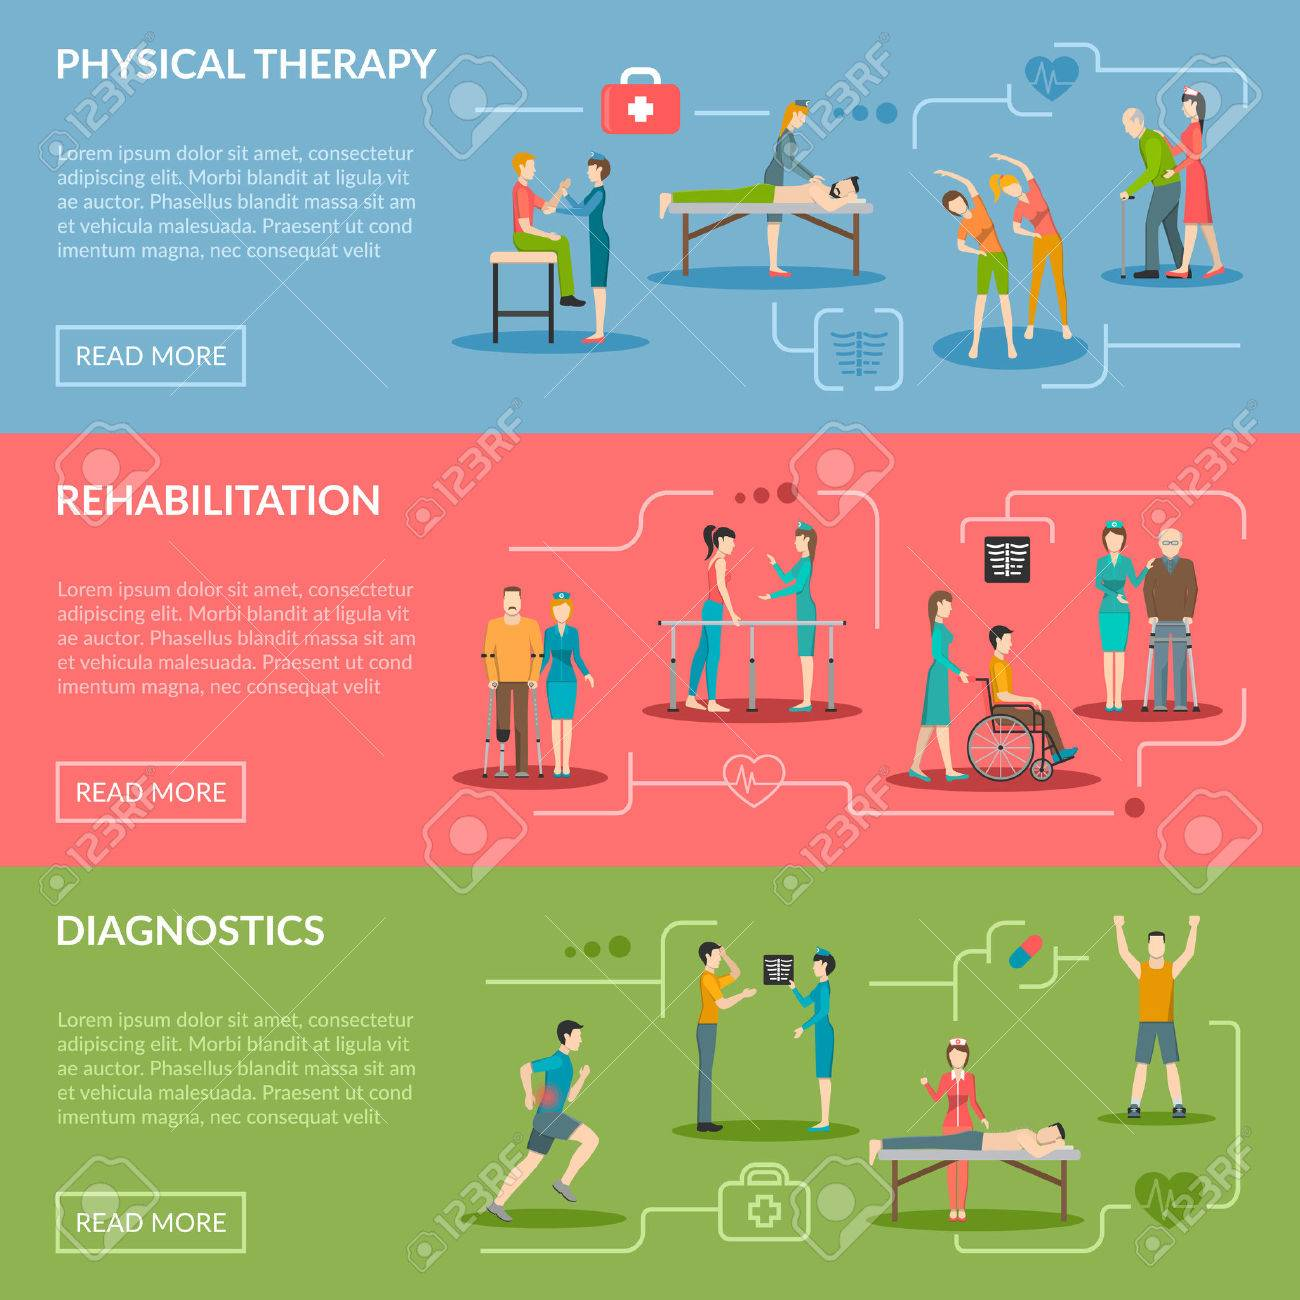 Physiotherapy horizontal banners set of diagnostics and rehabilitation center with medical staff patient and equipment flat vector illustration - 51141629